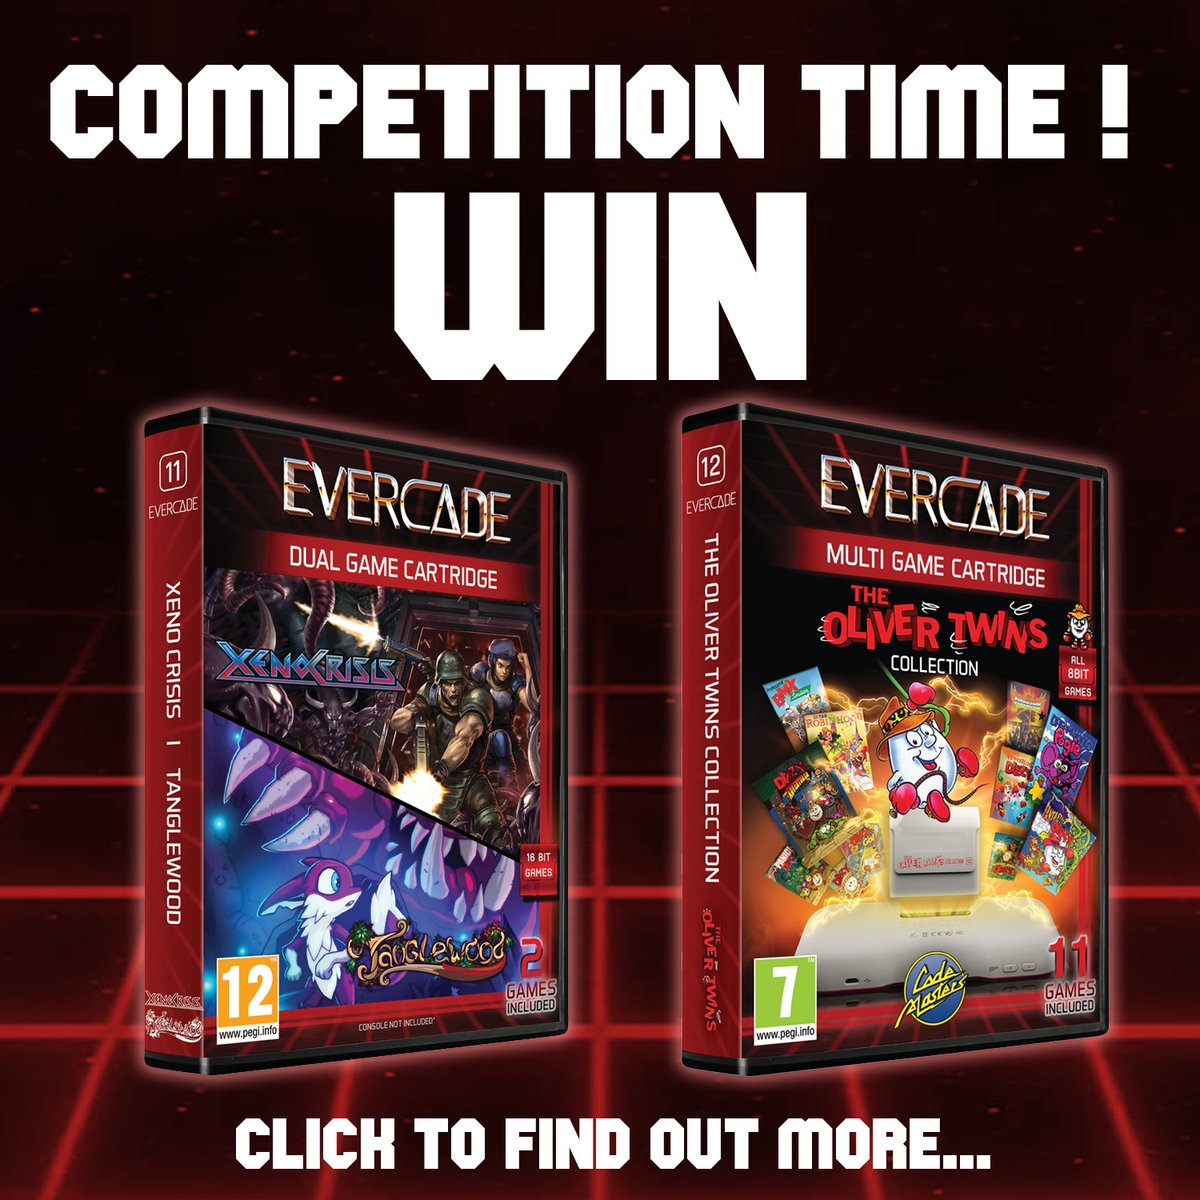 Competition Time! We are giving one lucky person a chance to win copies of our Oliver Twins and XenoCrisis/Tanglewood cartridges. Retweet and Follow us for one entry. Find out ALL the ways you can enter to improve your chances of winning -